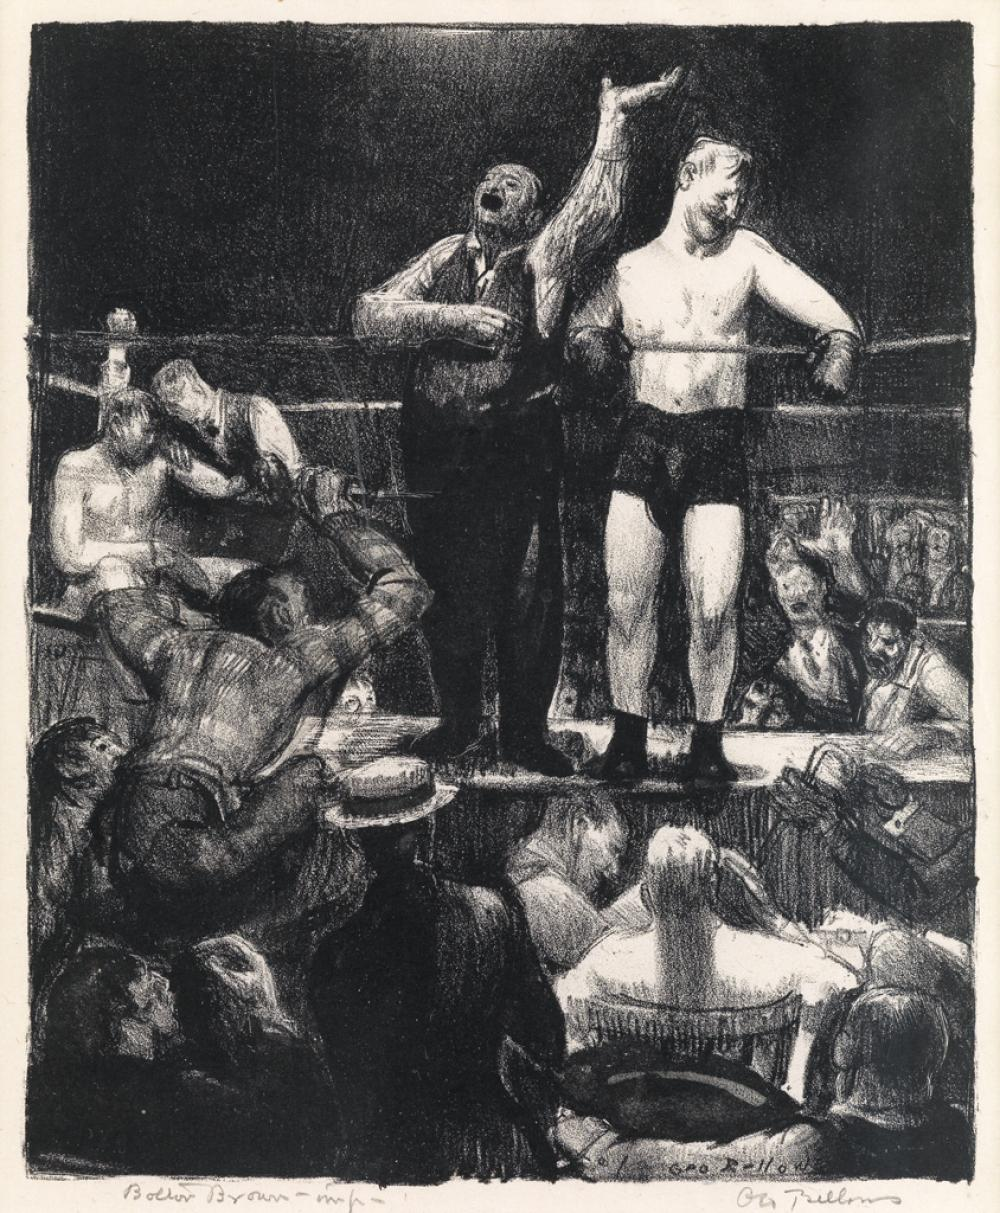 GEORGE BELLOWS Introductions.